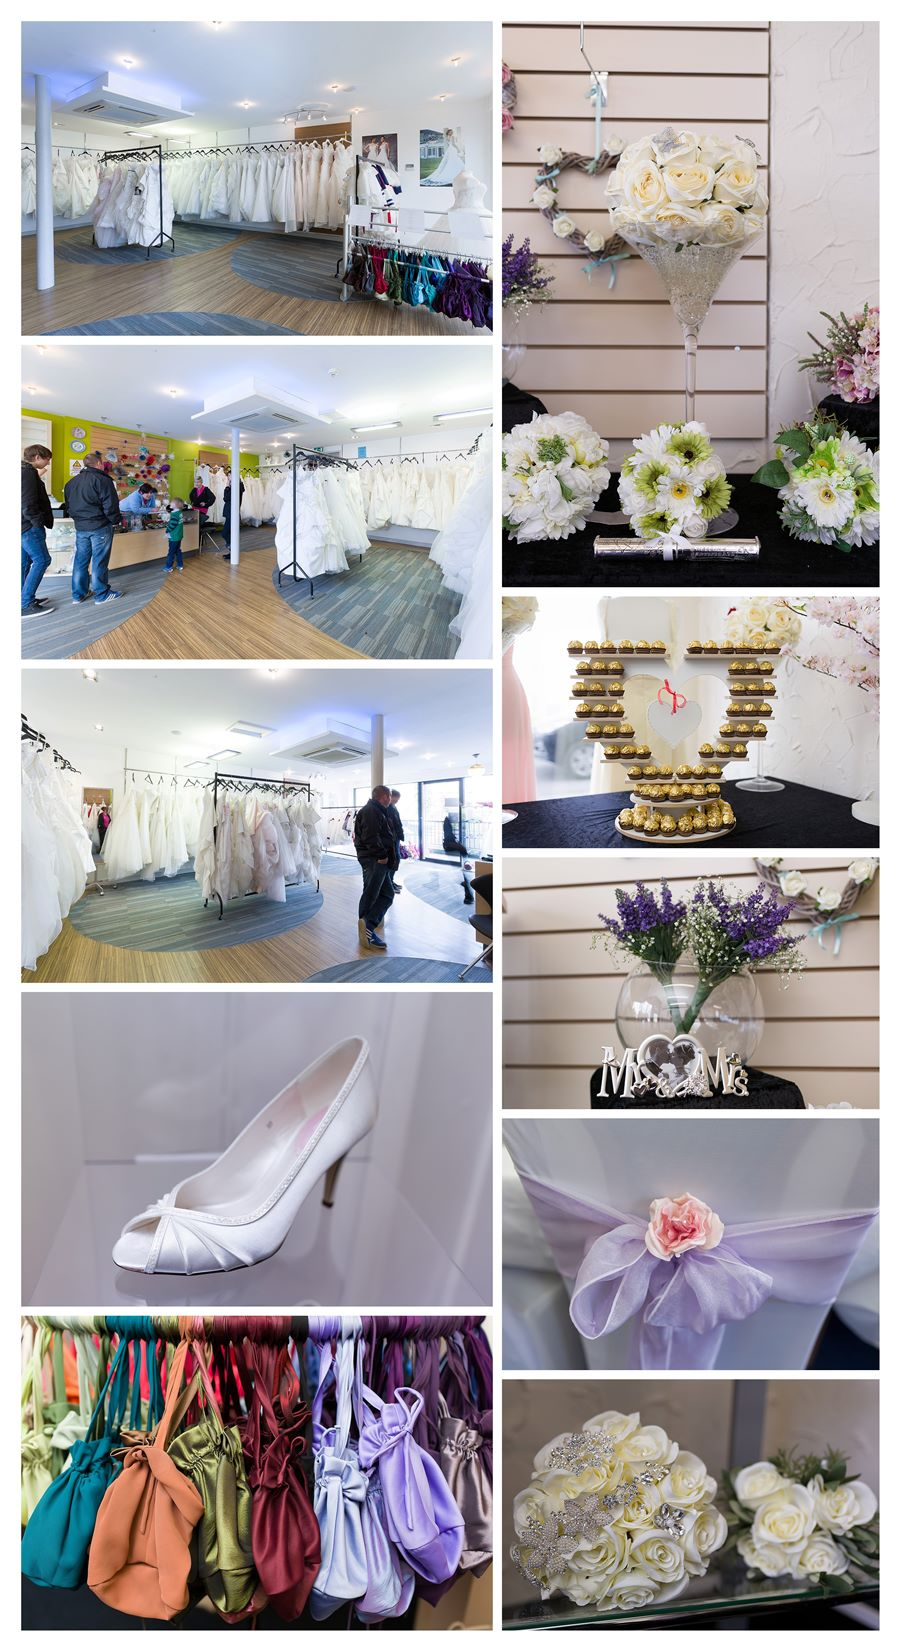 Selby weddings, Selby wedding shops, wedding photography Selby Yorkshire